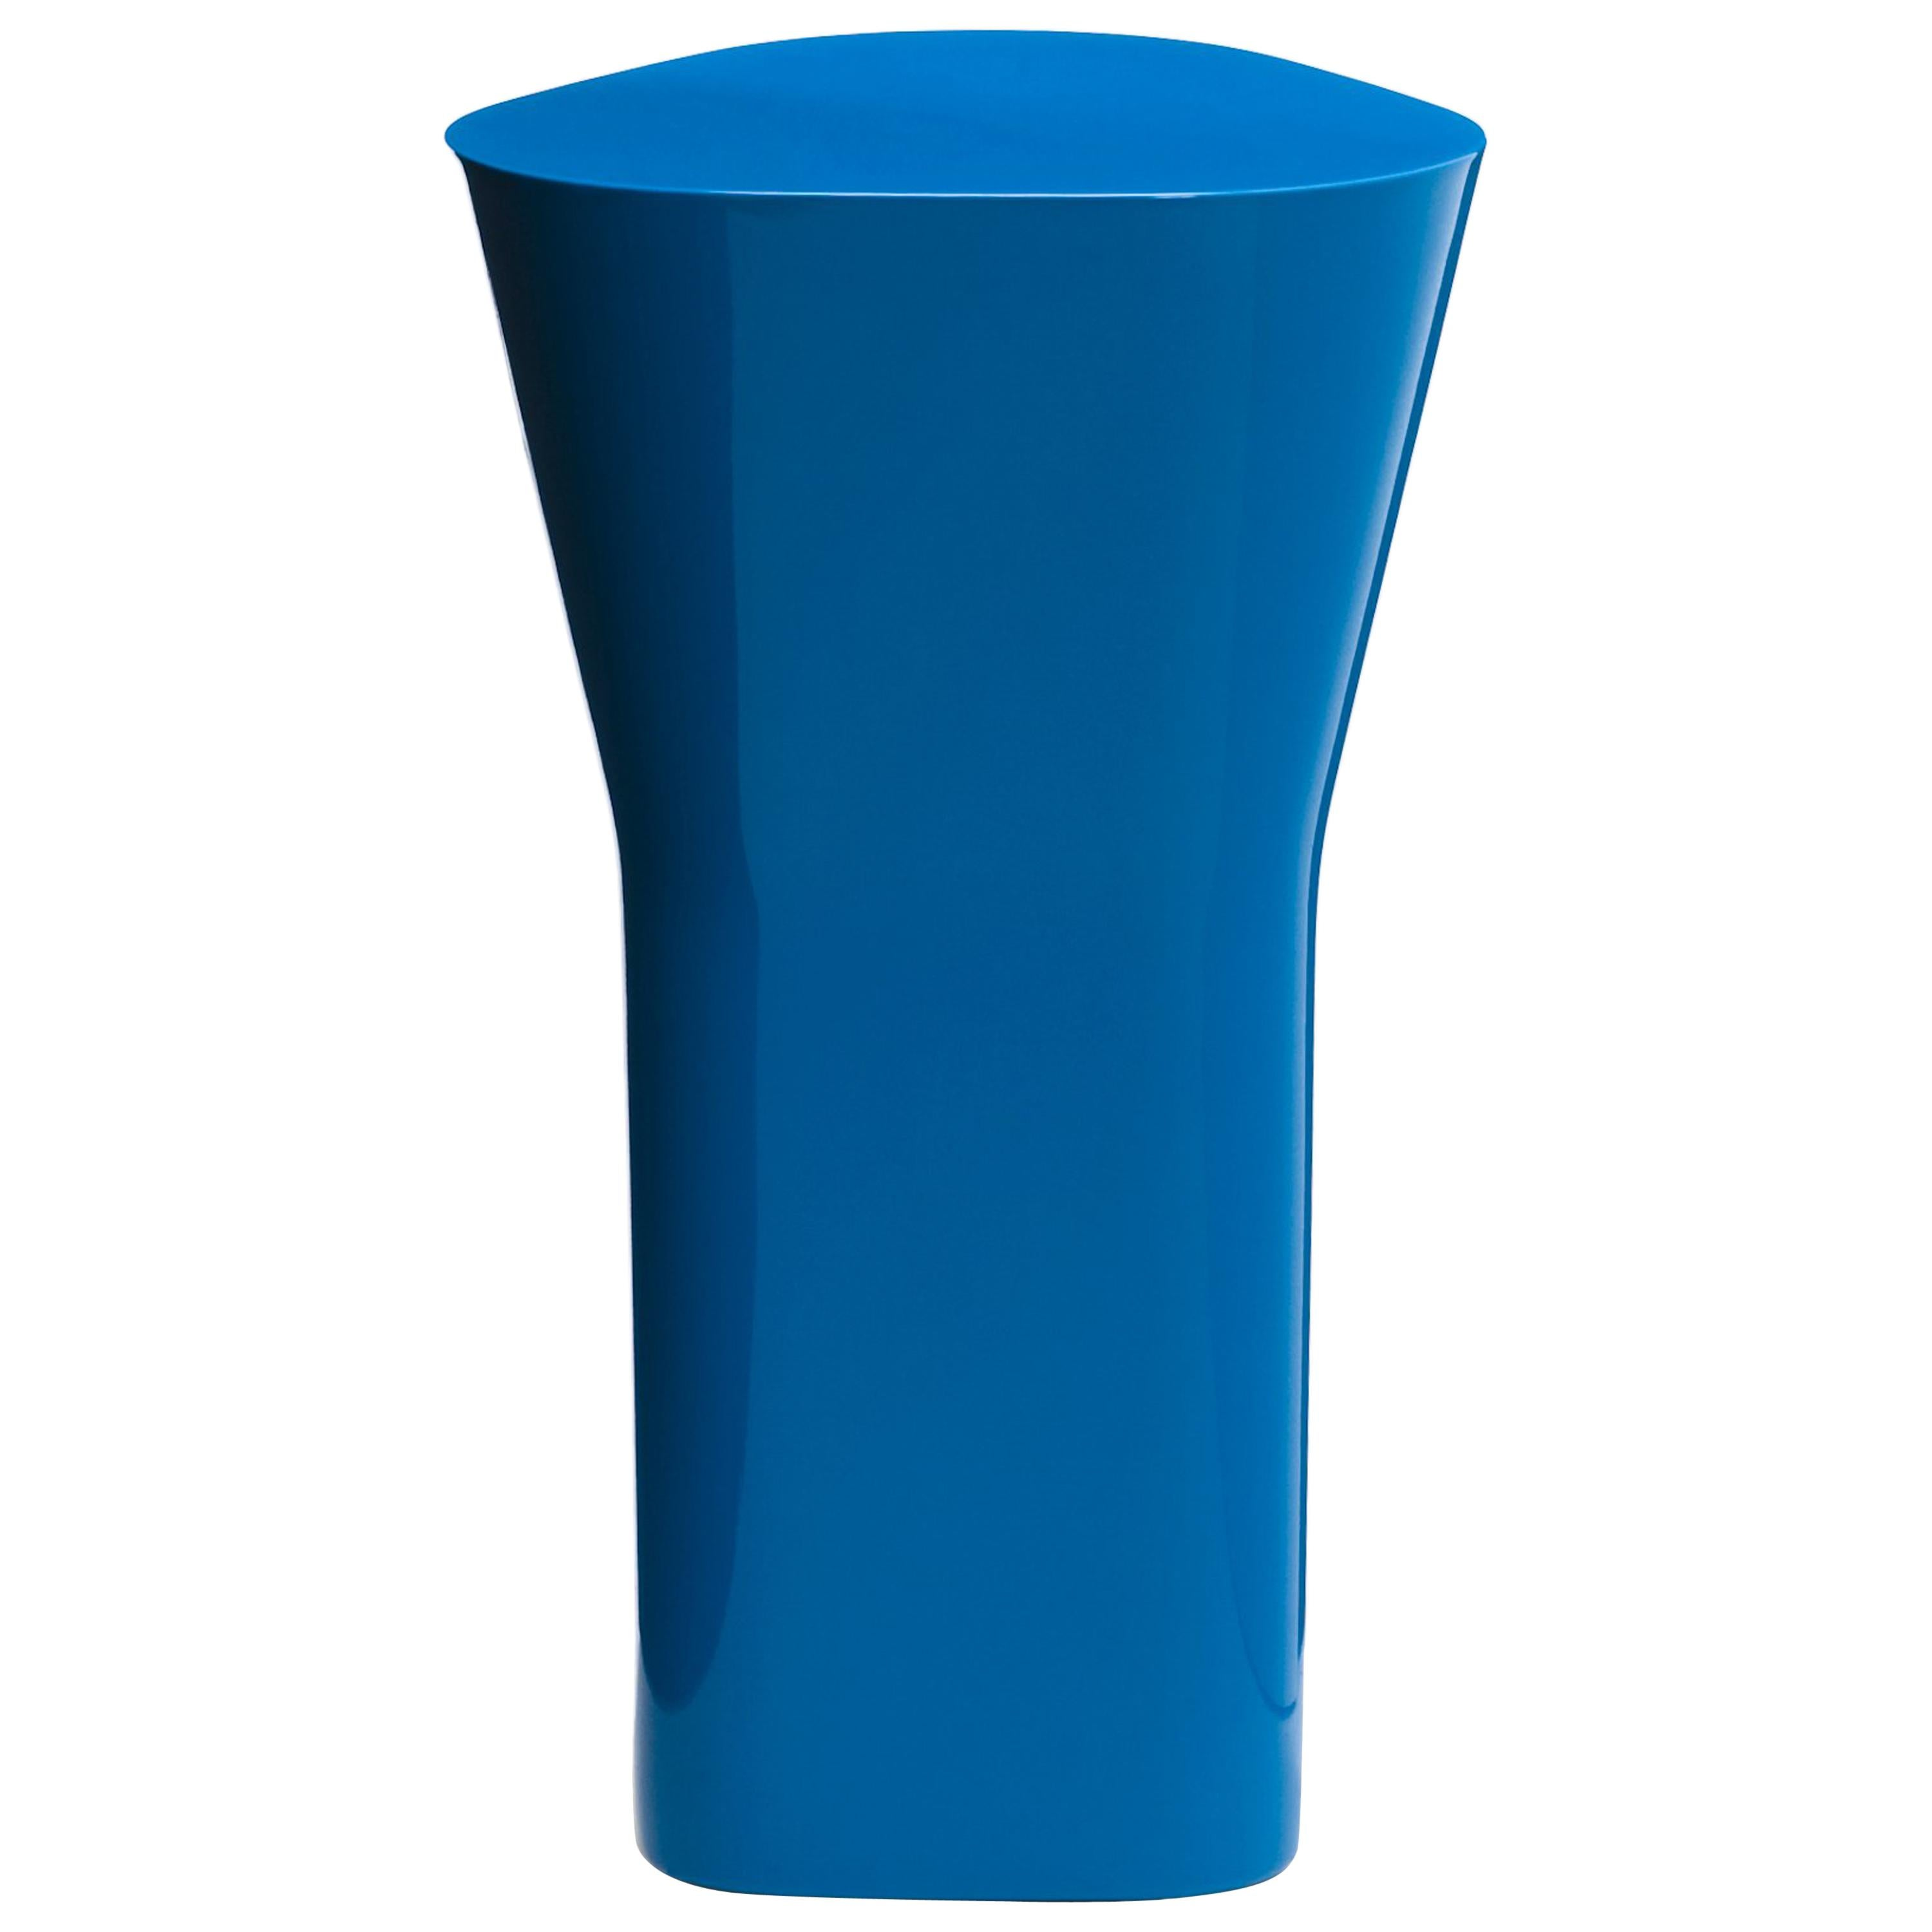 Established & Sons Delta Ceramic Side Table in Blue by Barber & Osgerby